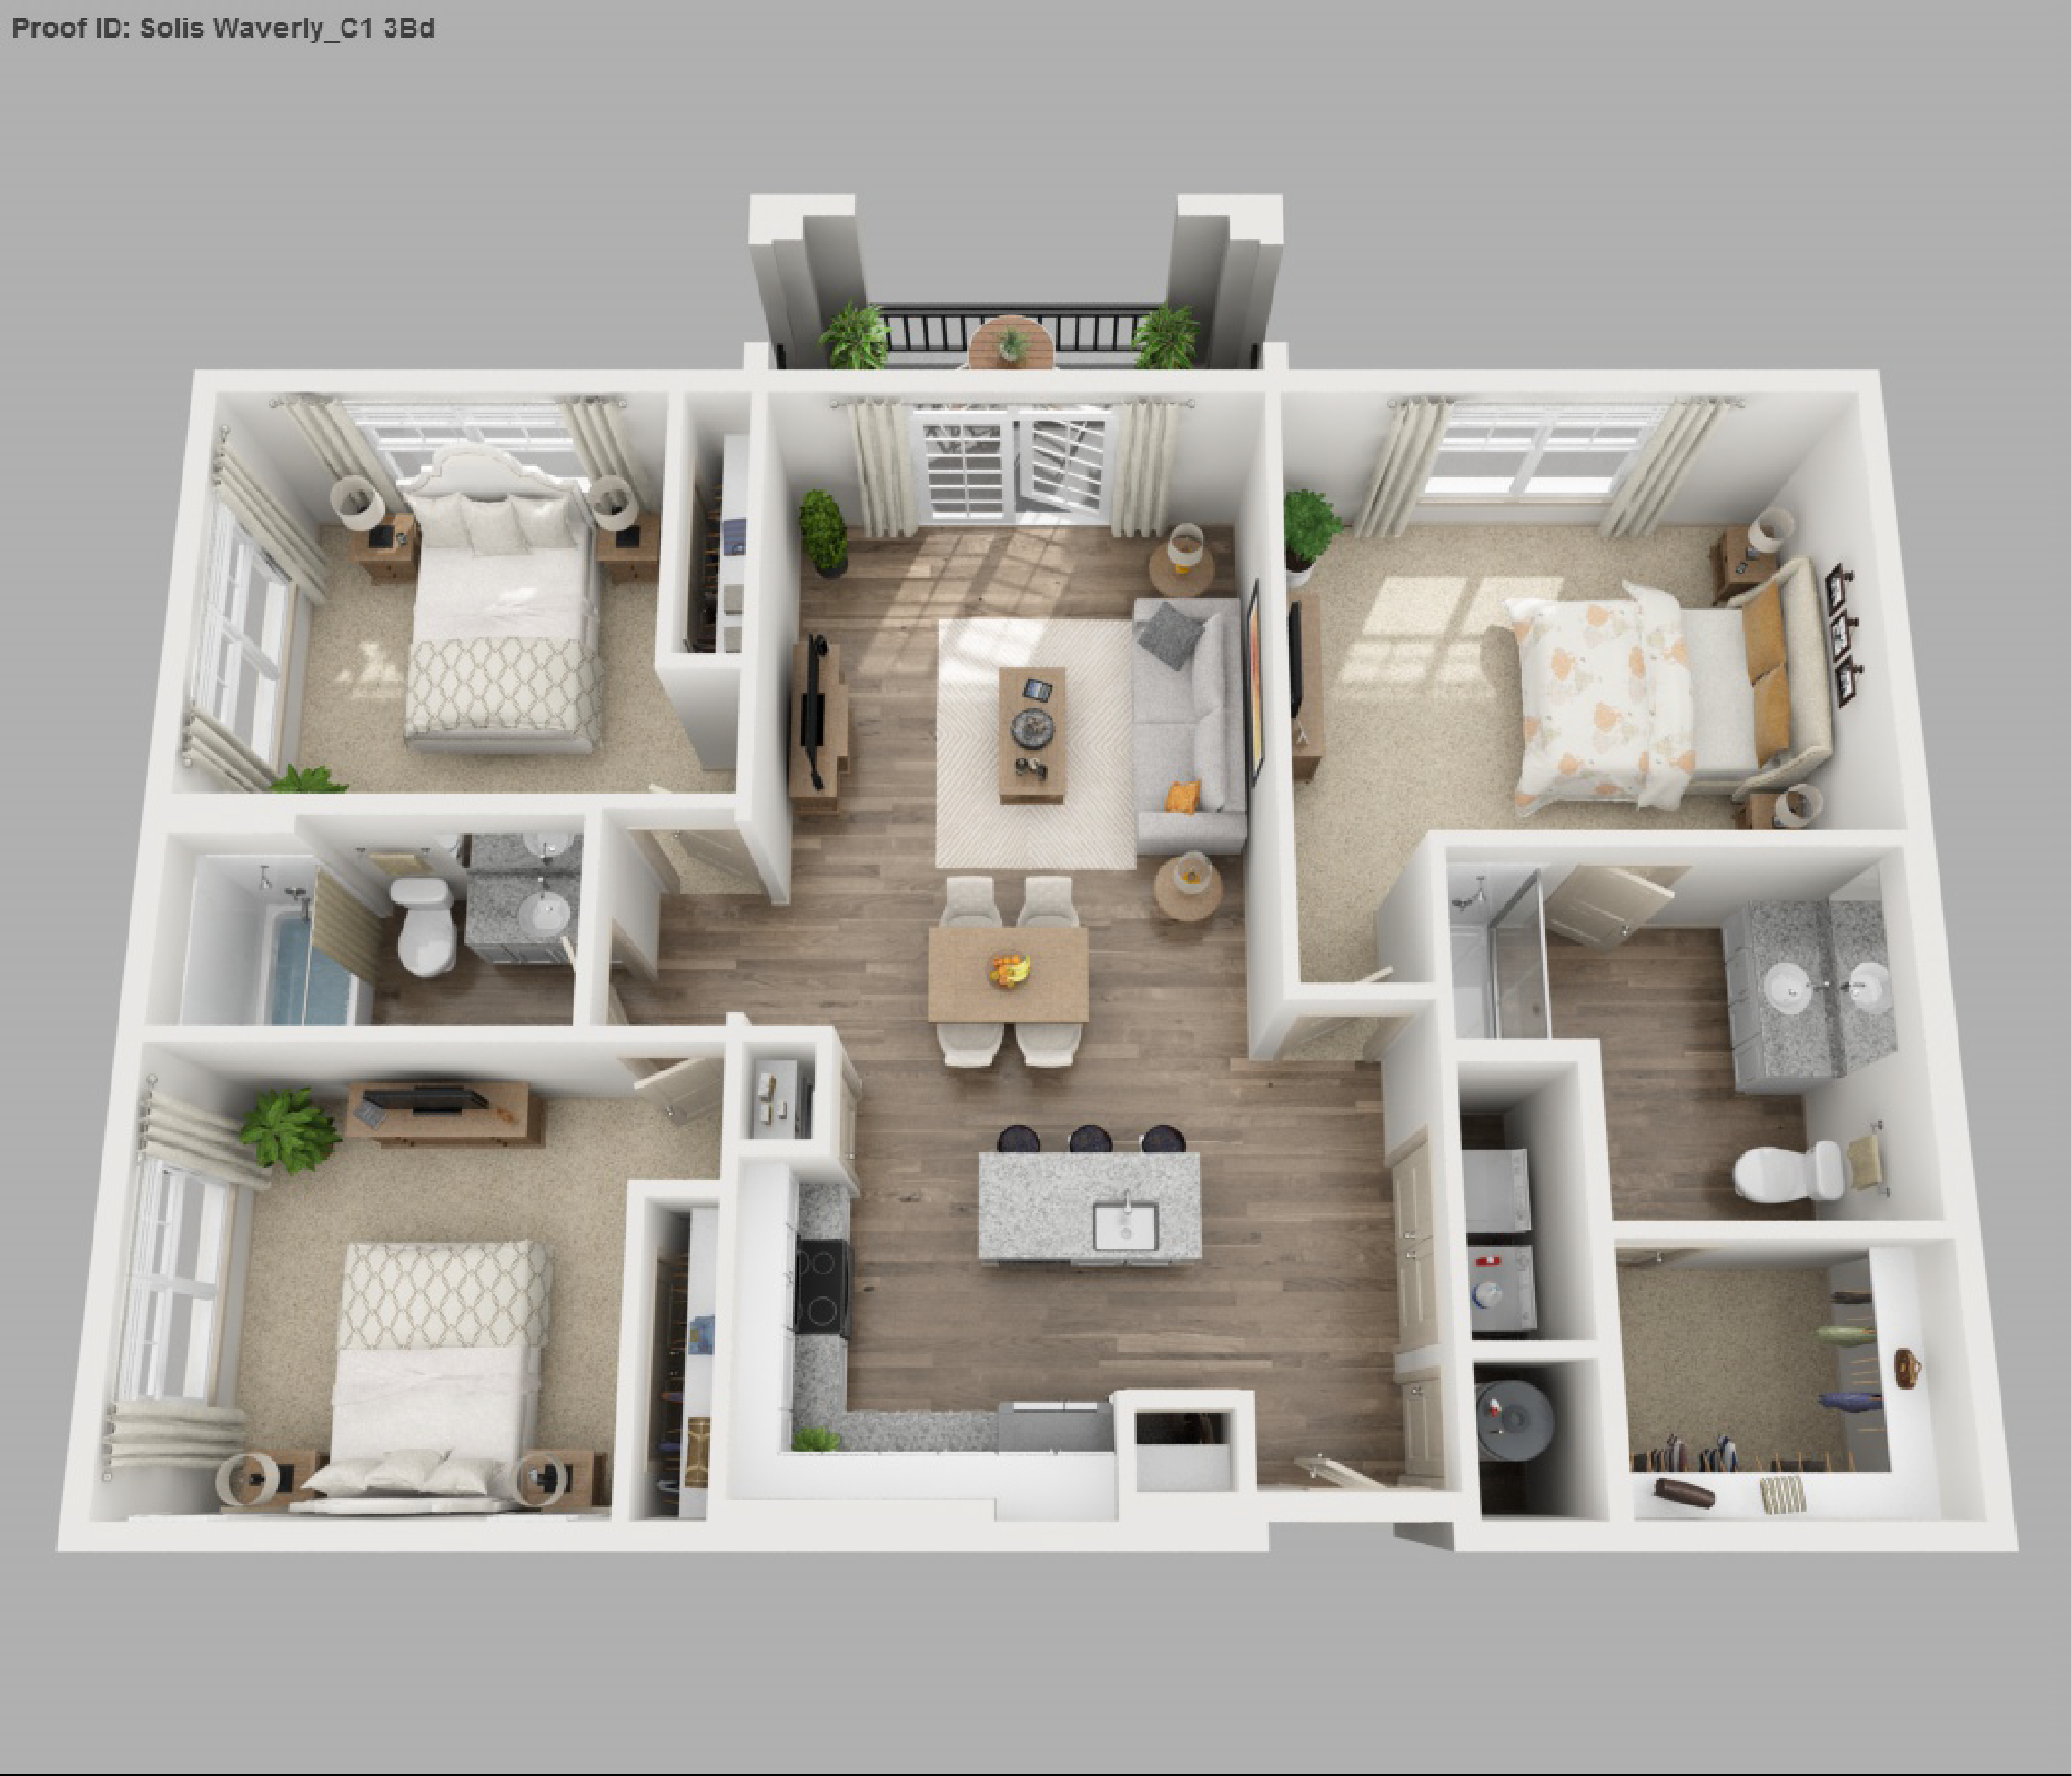 bedroom house floor plan small plans three free updates email #1: 154e08df e817a4e1bdfbcdbf